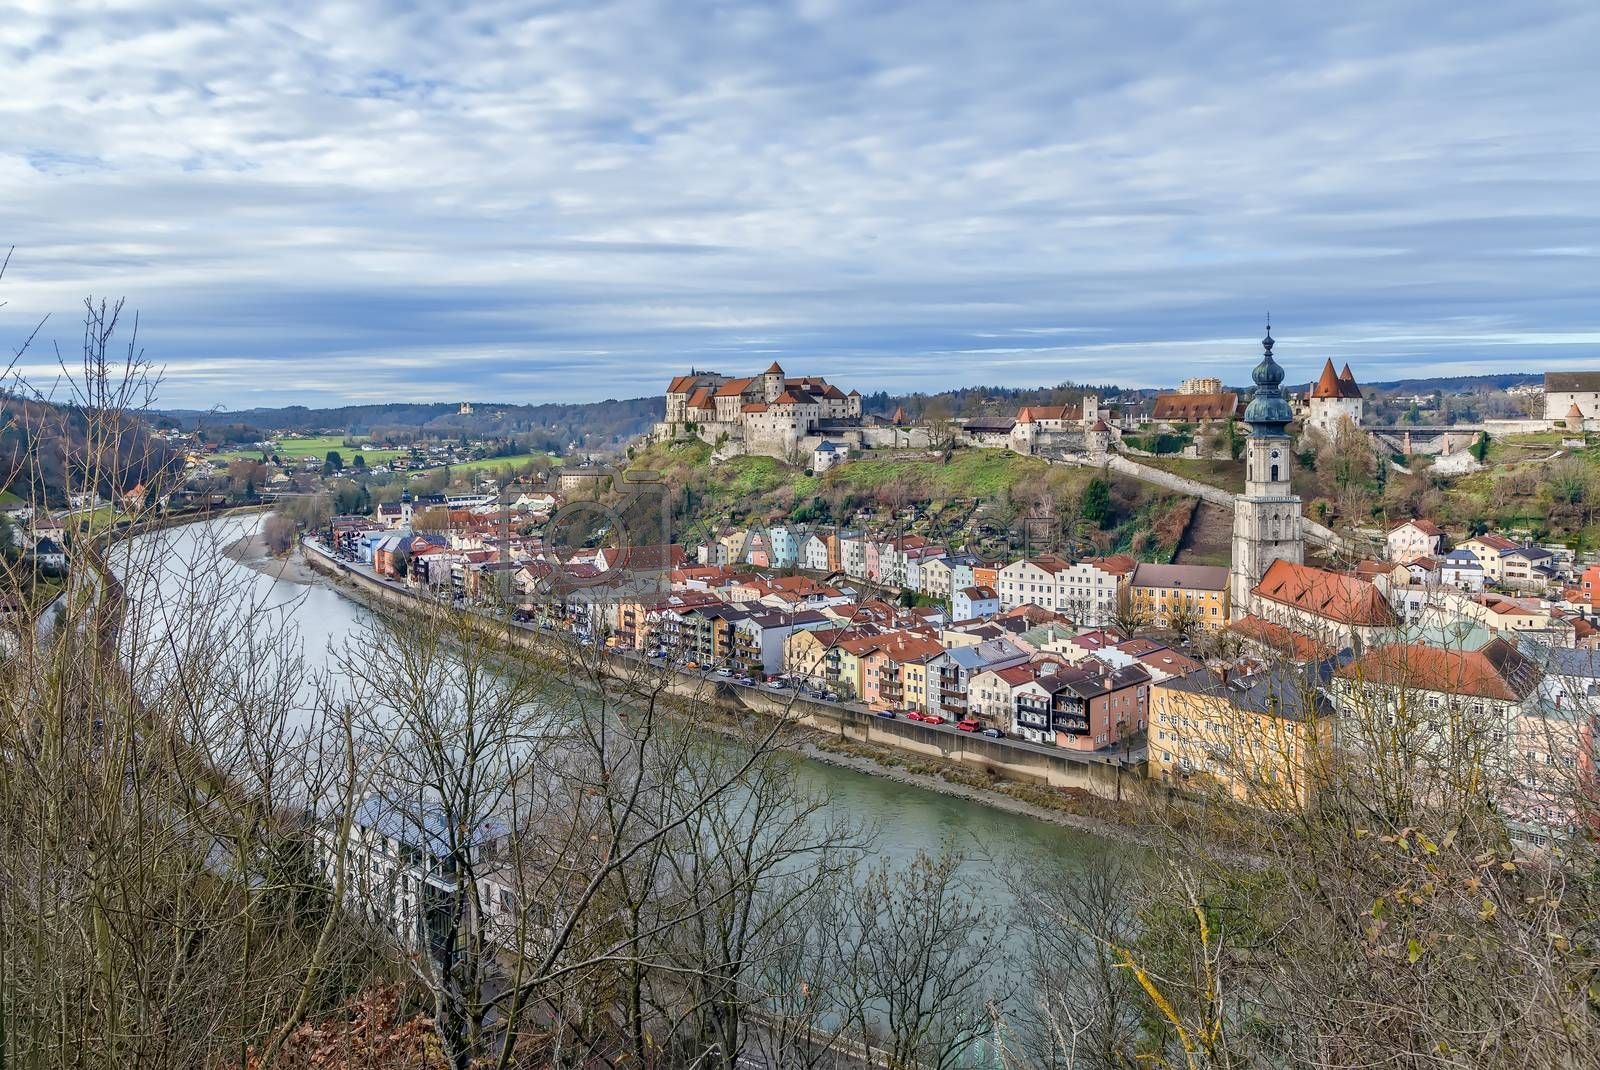 View of Burghausen from the hill across Salzach river, Upper Bavaria, Germany